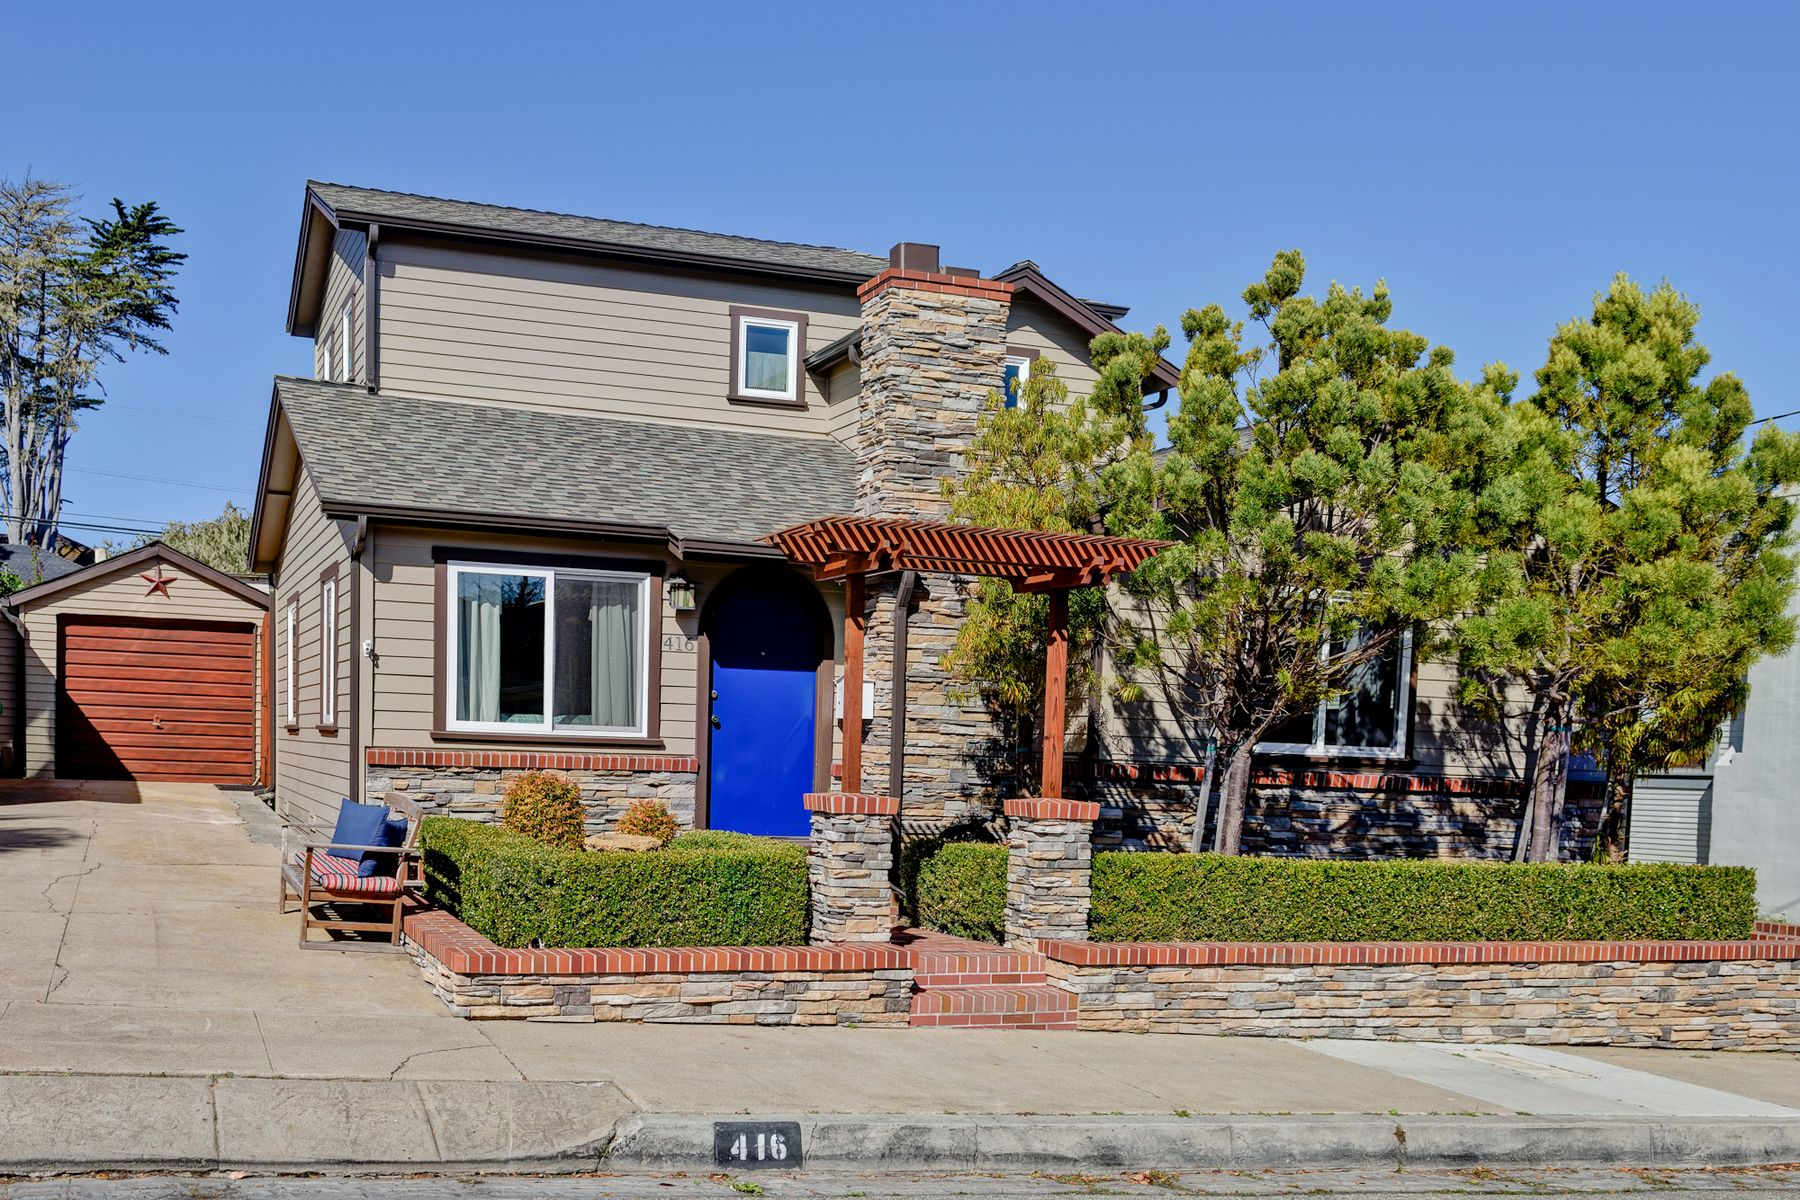 """Single Family Homes for Sale at Fabulous Pacific Grove """"Retreat"""" Home! 416 19th Street Pacific Grove, California 93950 United States"""